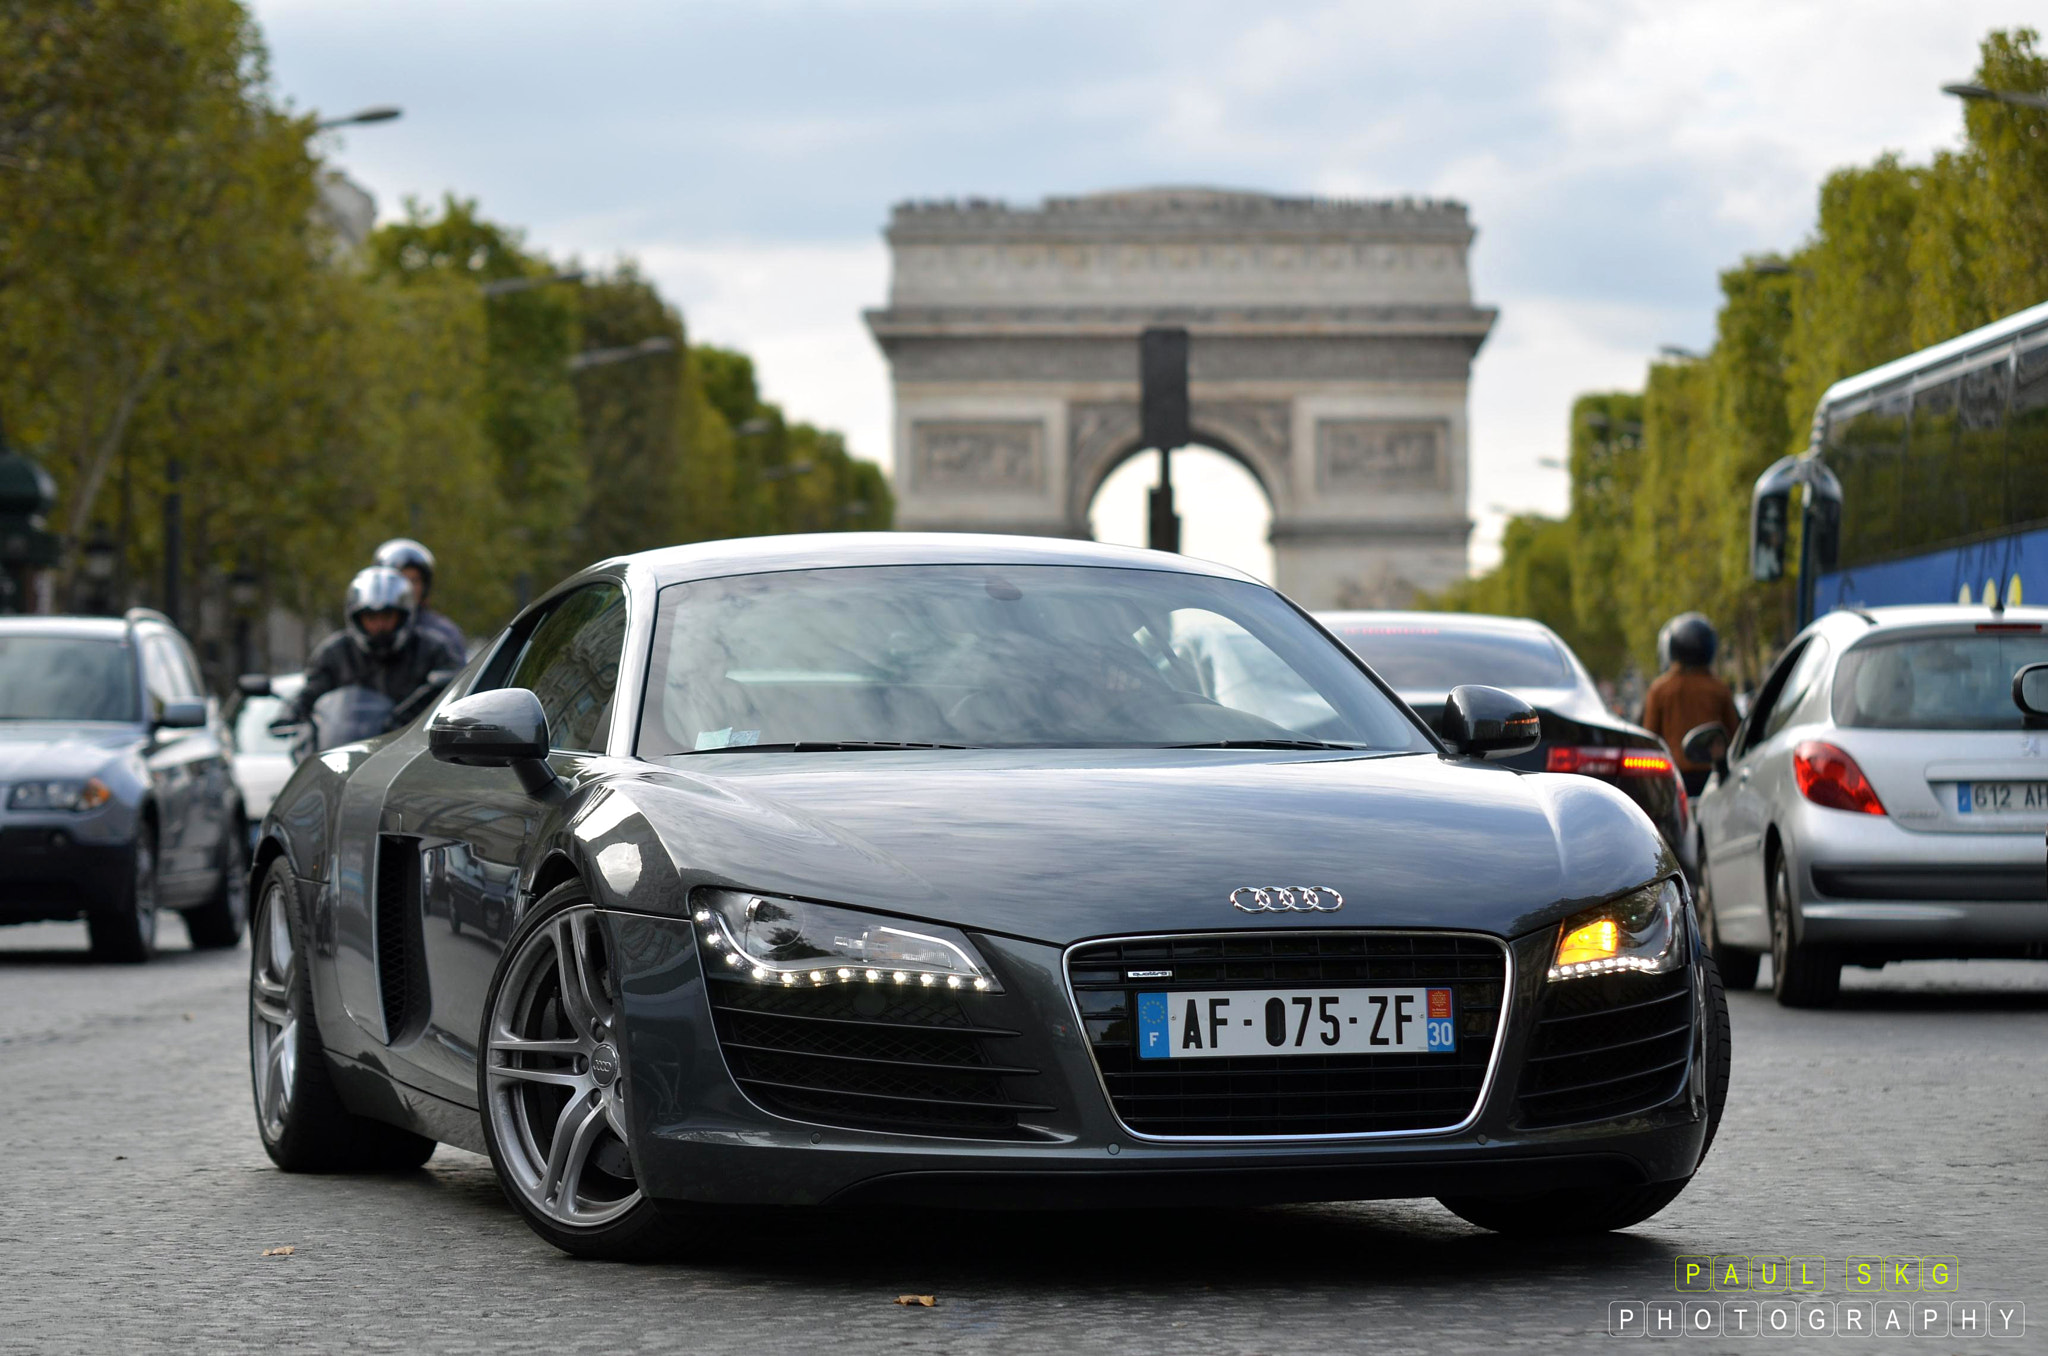 Photograph Champs Elysees by Paul SKG on 500px